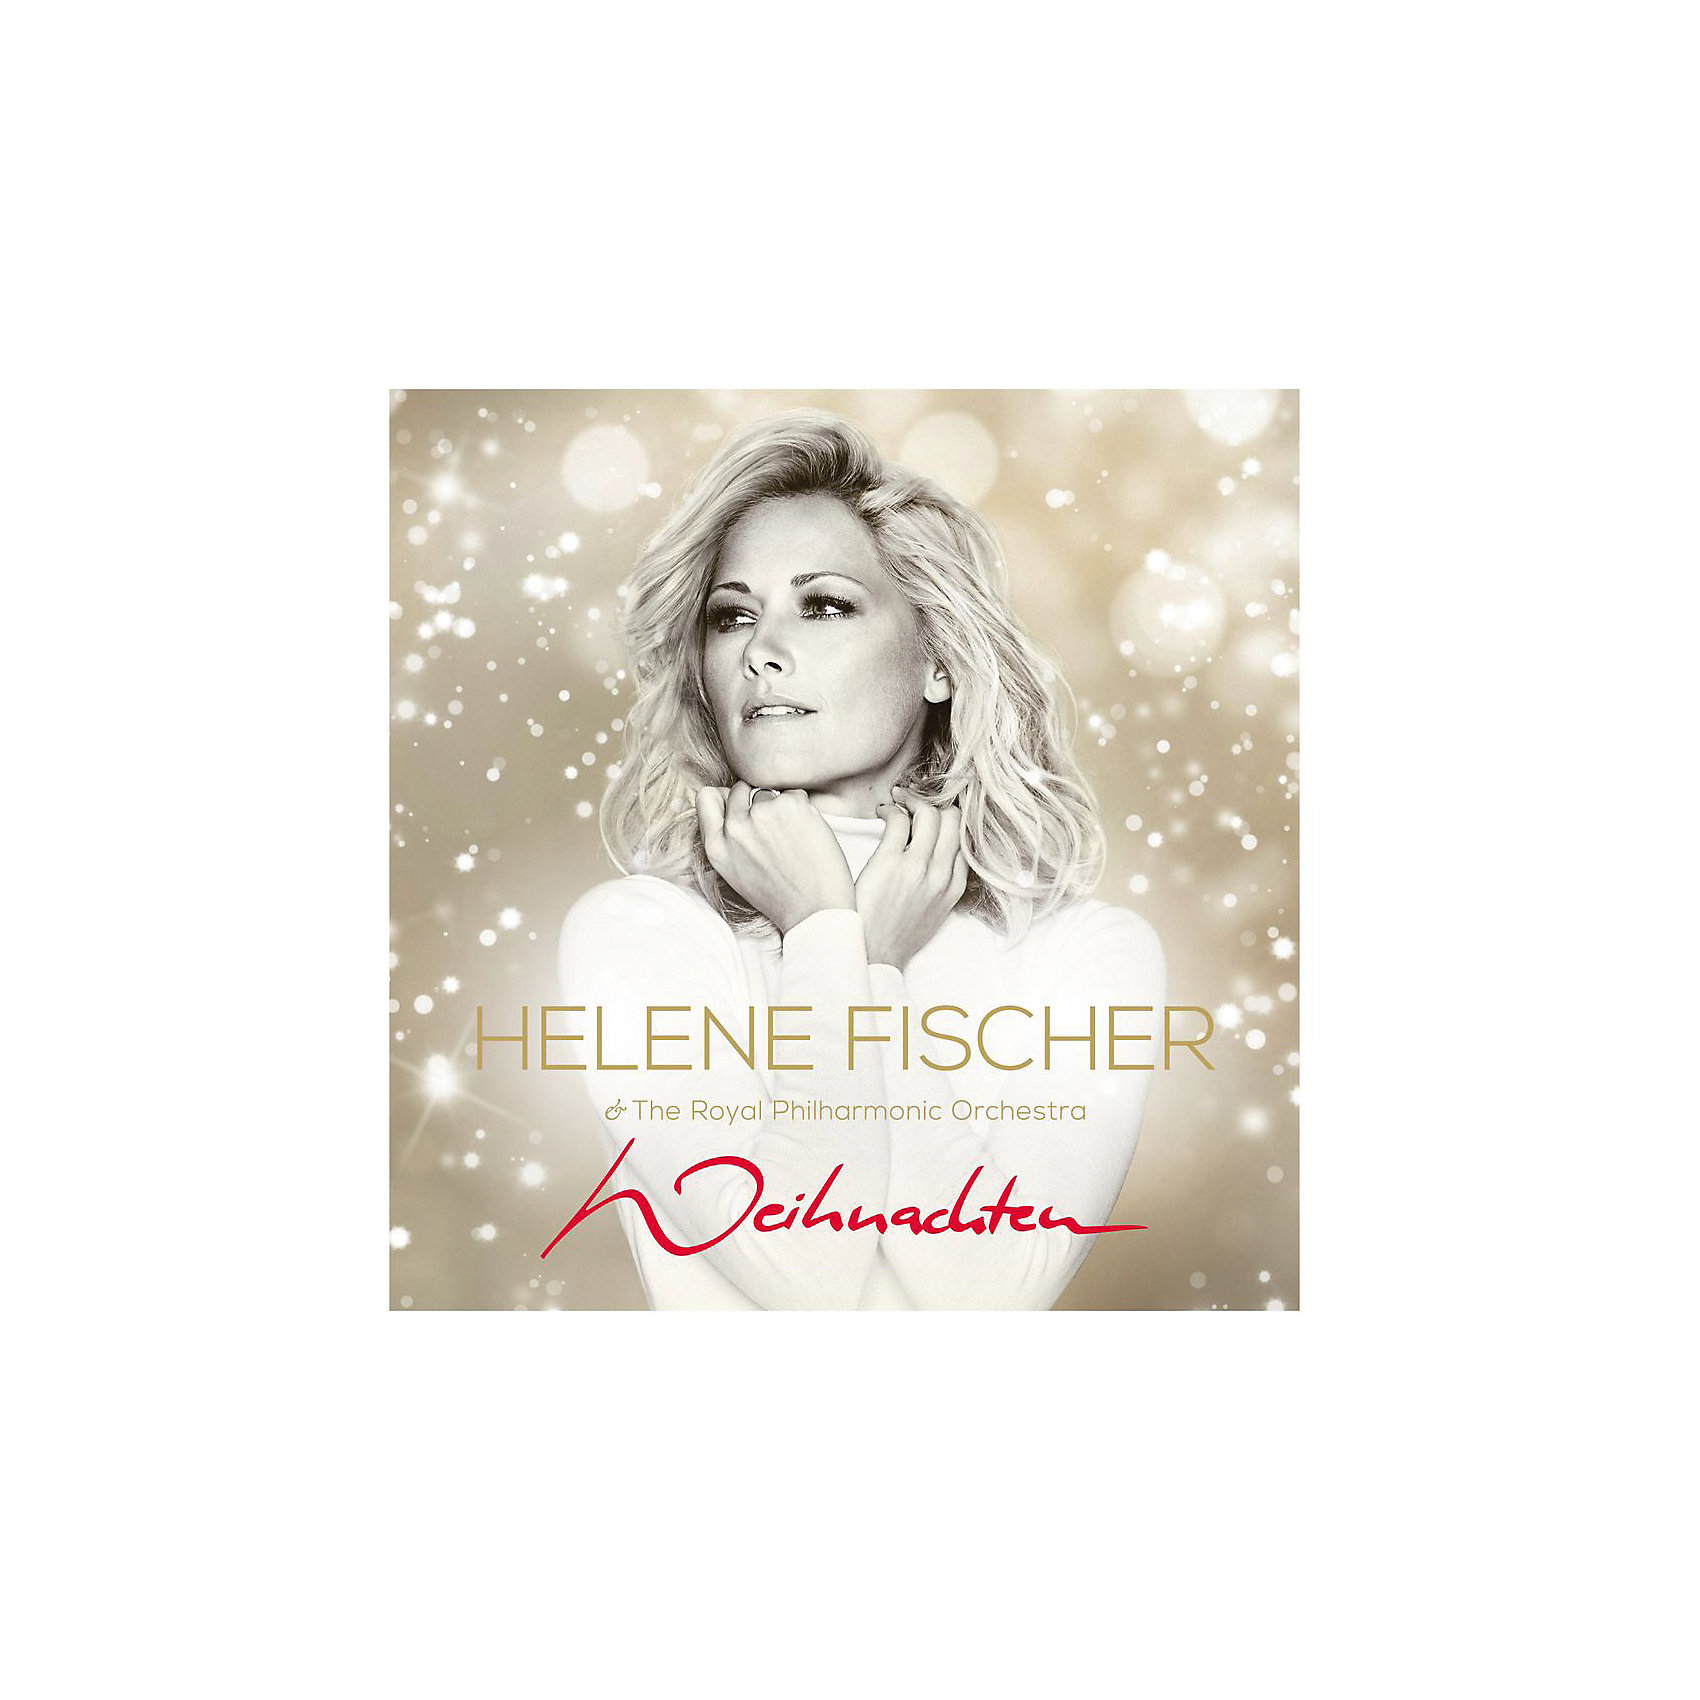 helene fischer cd neu preisvergleiche. Black Bedroom Furniture Sets. Home Design Ideas